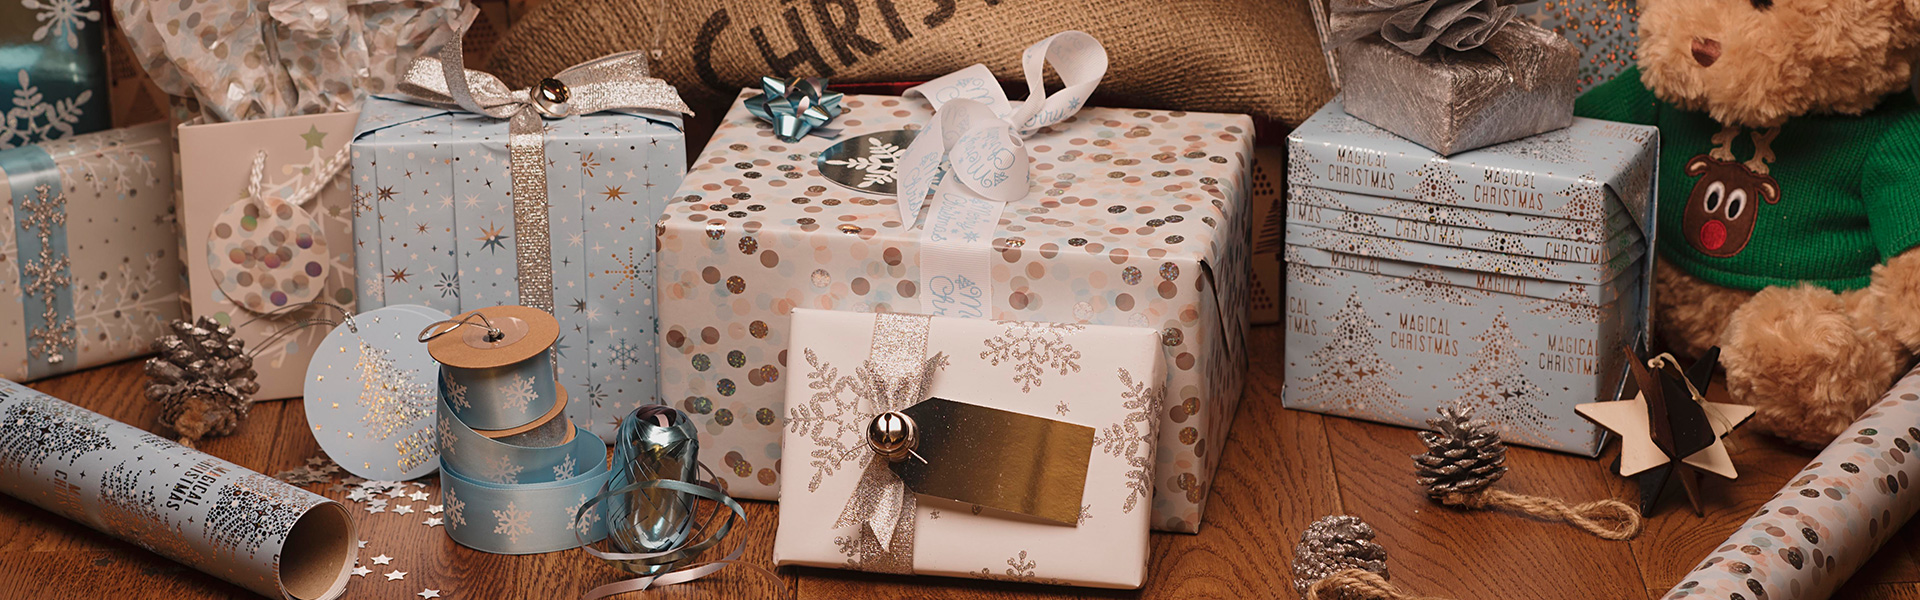 Magical Frozen Christmas Gift Wrap